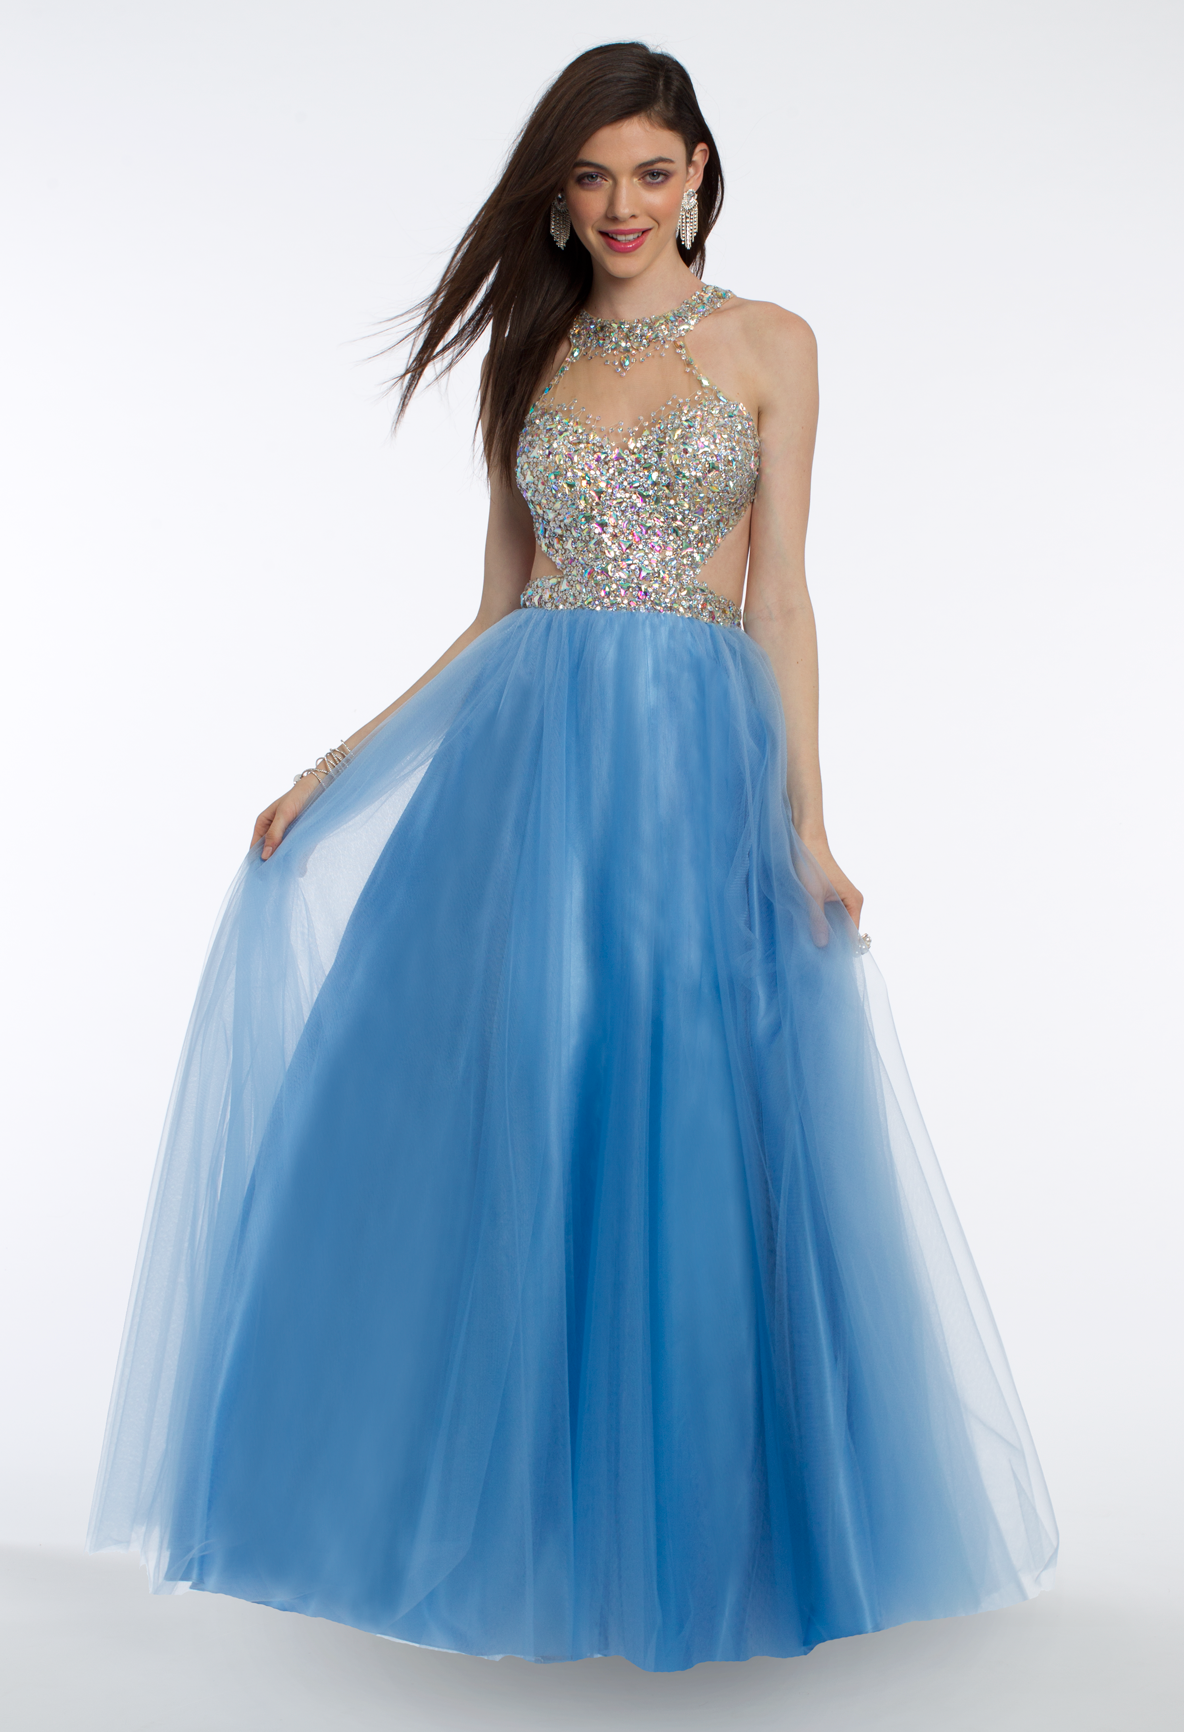 Fairy tale style prom dresses - Prom dress style